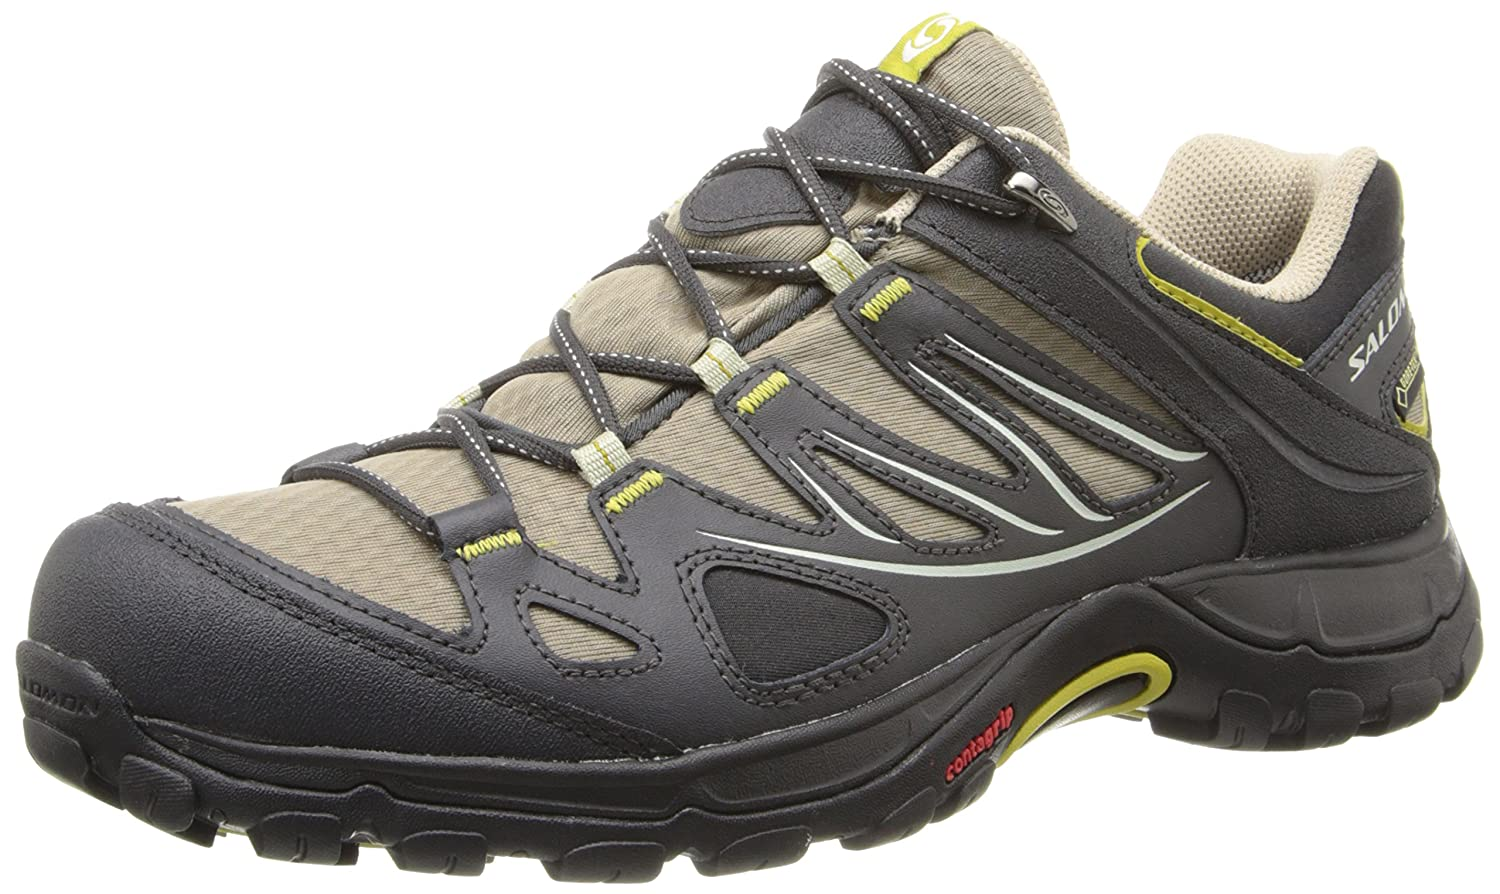 Salomon Women's Ellipse GTX Hiking Shoe B00KWOOXWU 7.5 B(M) US|Thyme/Asphalt/Dark Green